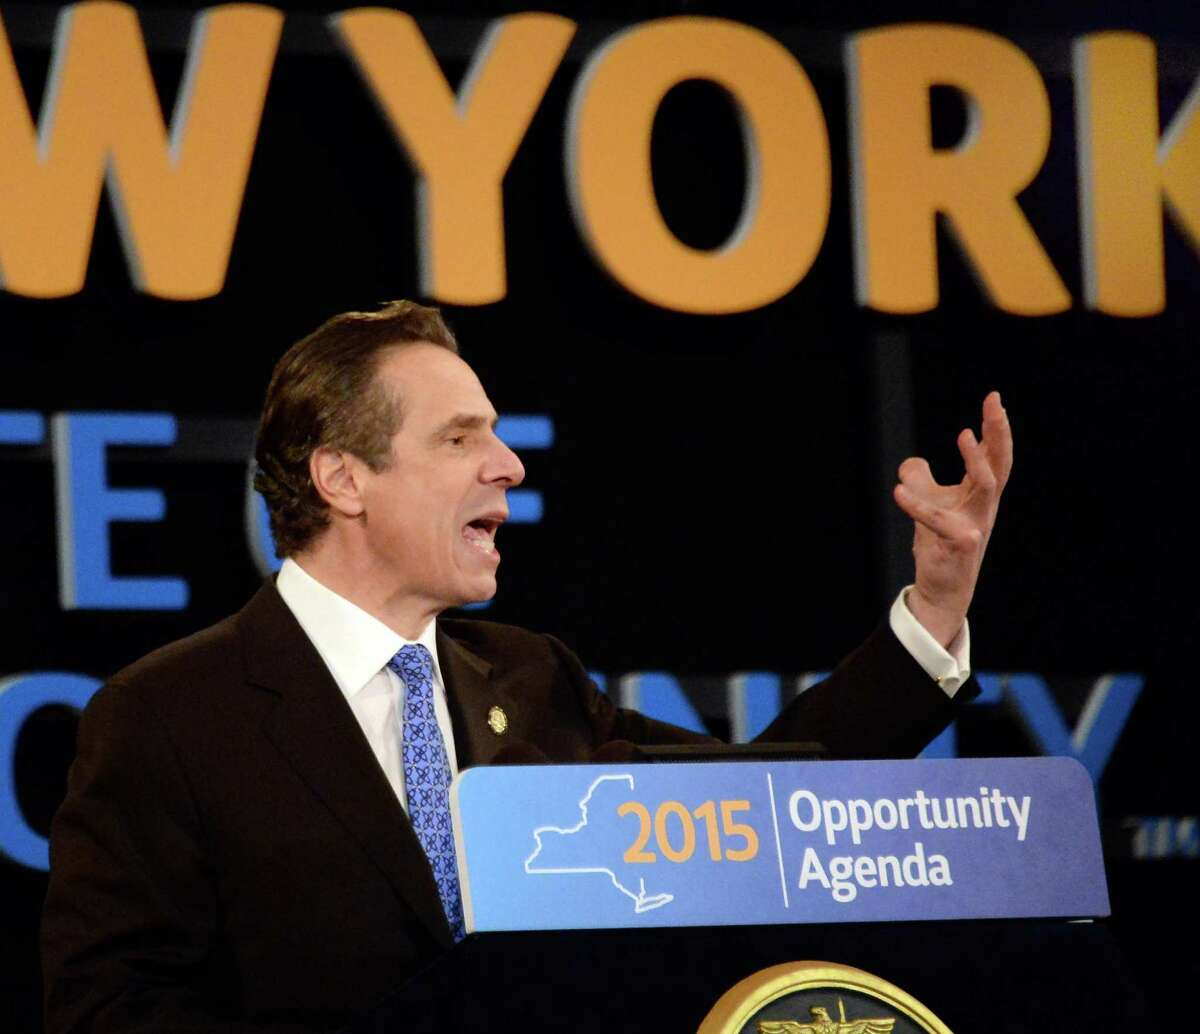 NYS Gov. Andrew Cuomo delivers his State of the State address and budget proposal Wednesday, Jan. 21, 2015, at the Empire State Plaza Convention Center in Albany, N.Y. (John Carl D'Annibale / Times Union)